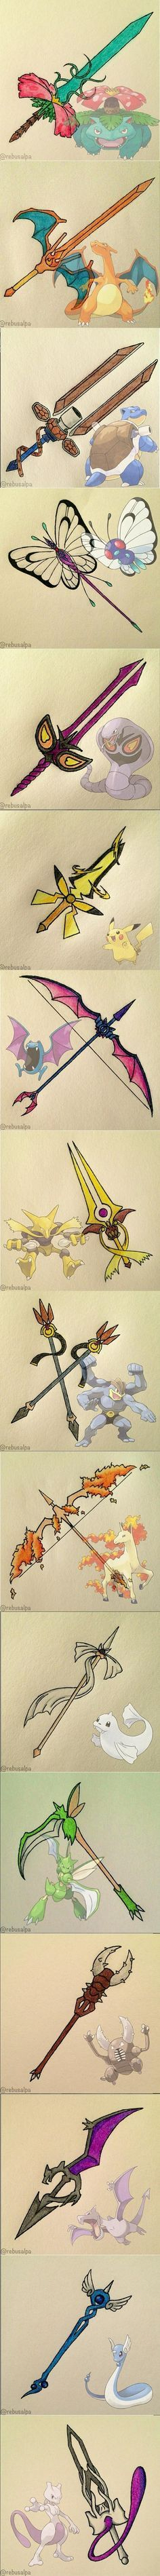 Pokémon Weapon Art. I have to say, I love Charizard's, Blastoise's, Rapidash's, and Dragonaire's weapons!